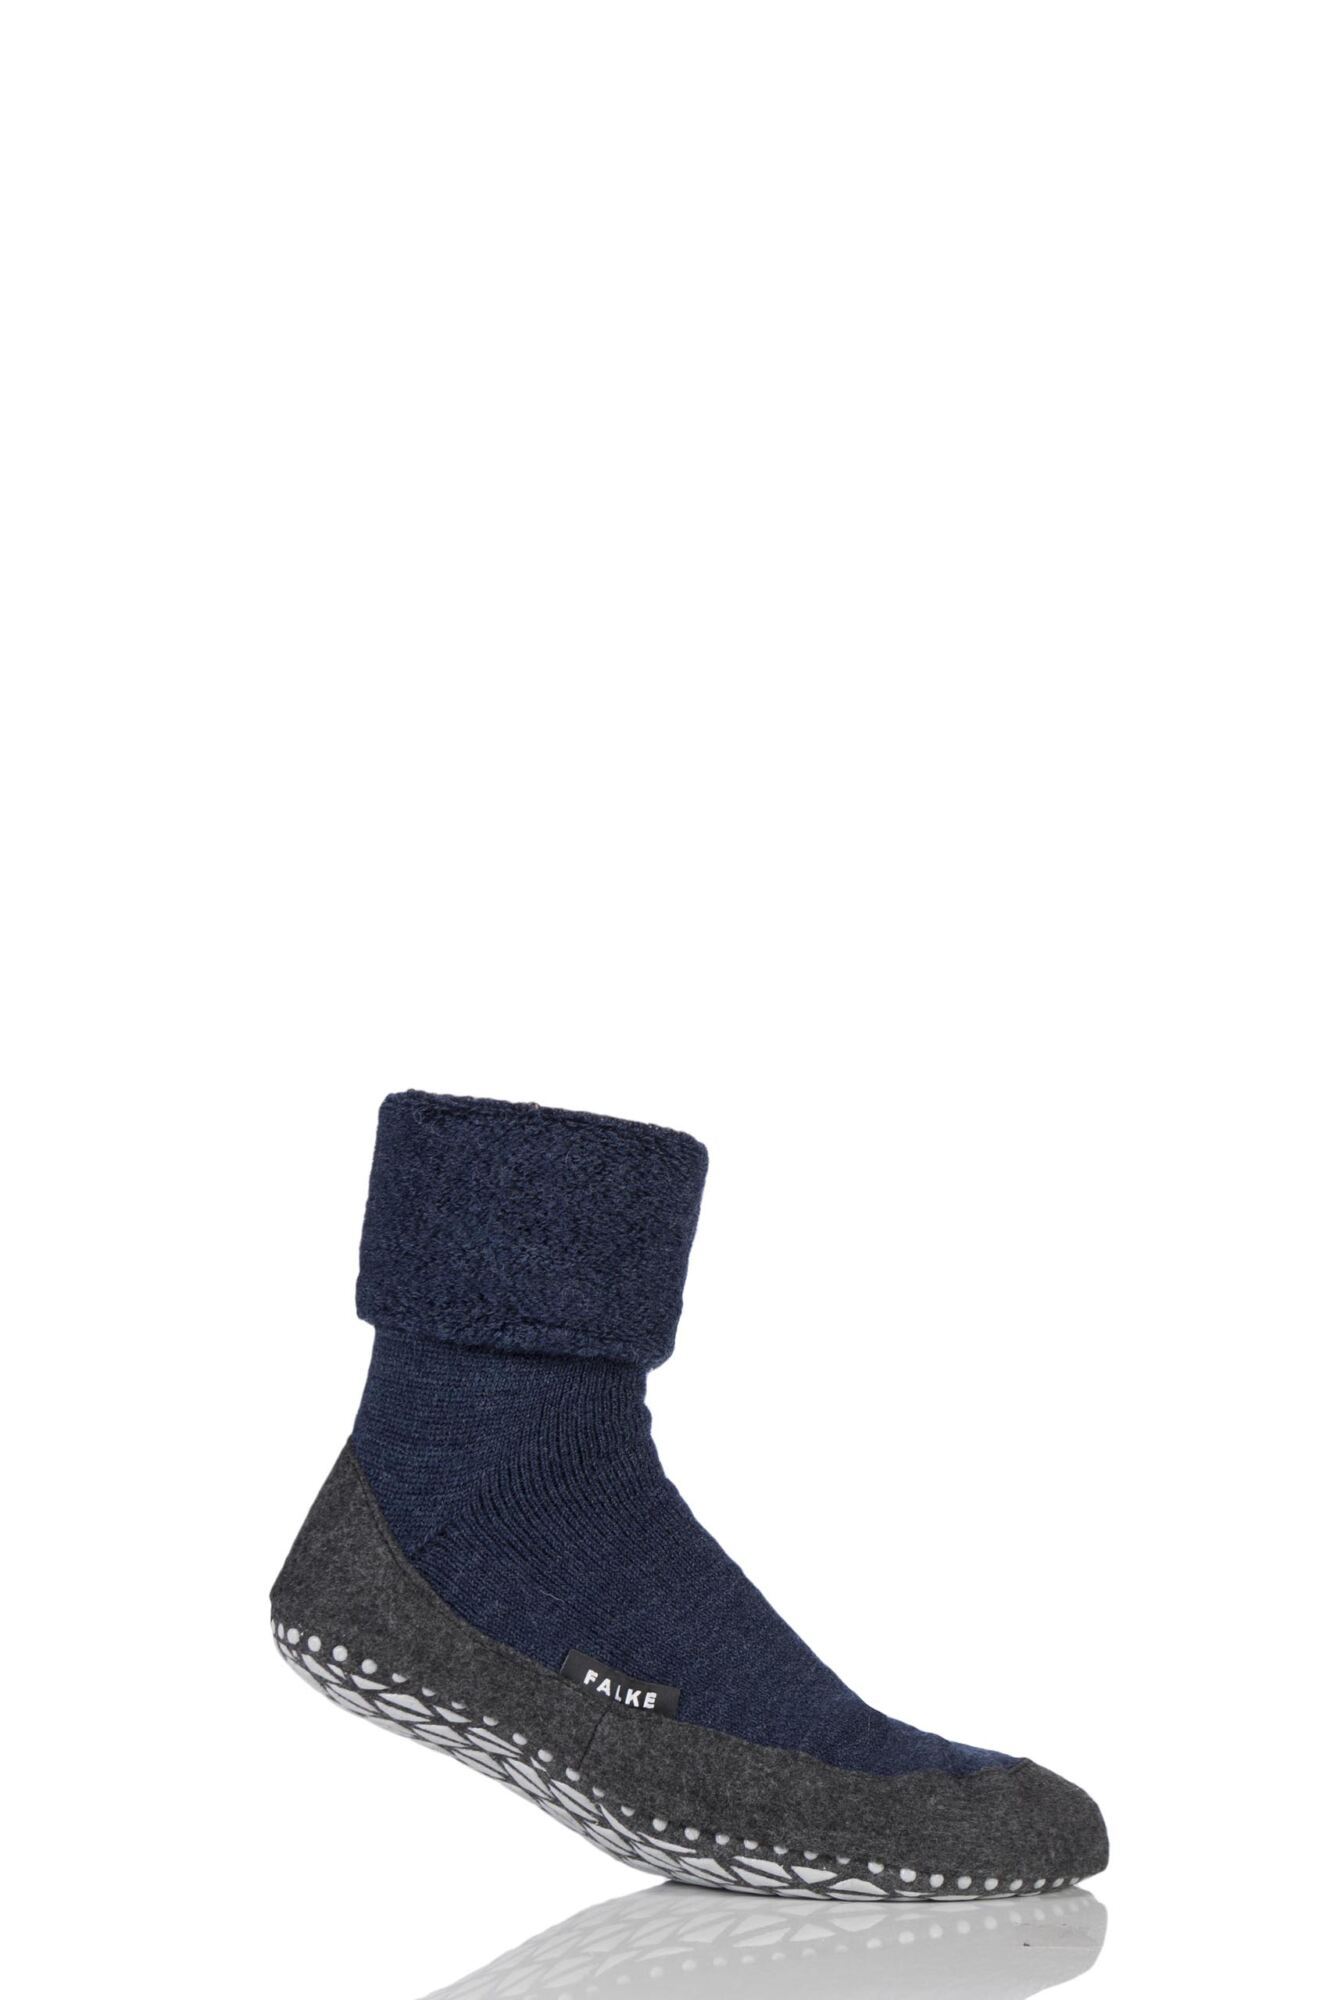 1 Pair Cosyshoe Virgin Wool Home Socks Men's - Falke